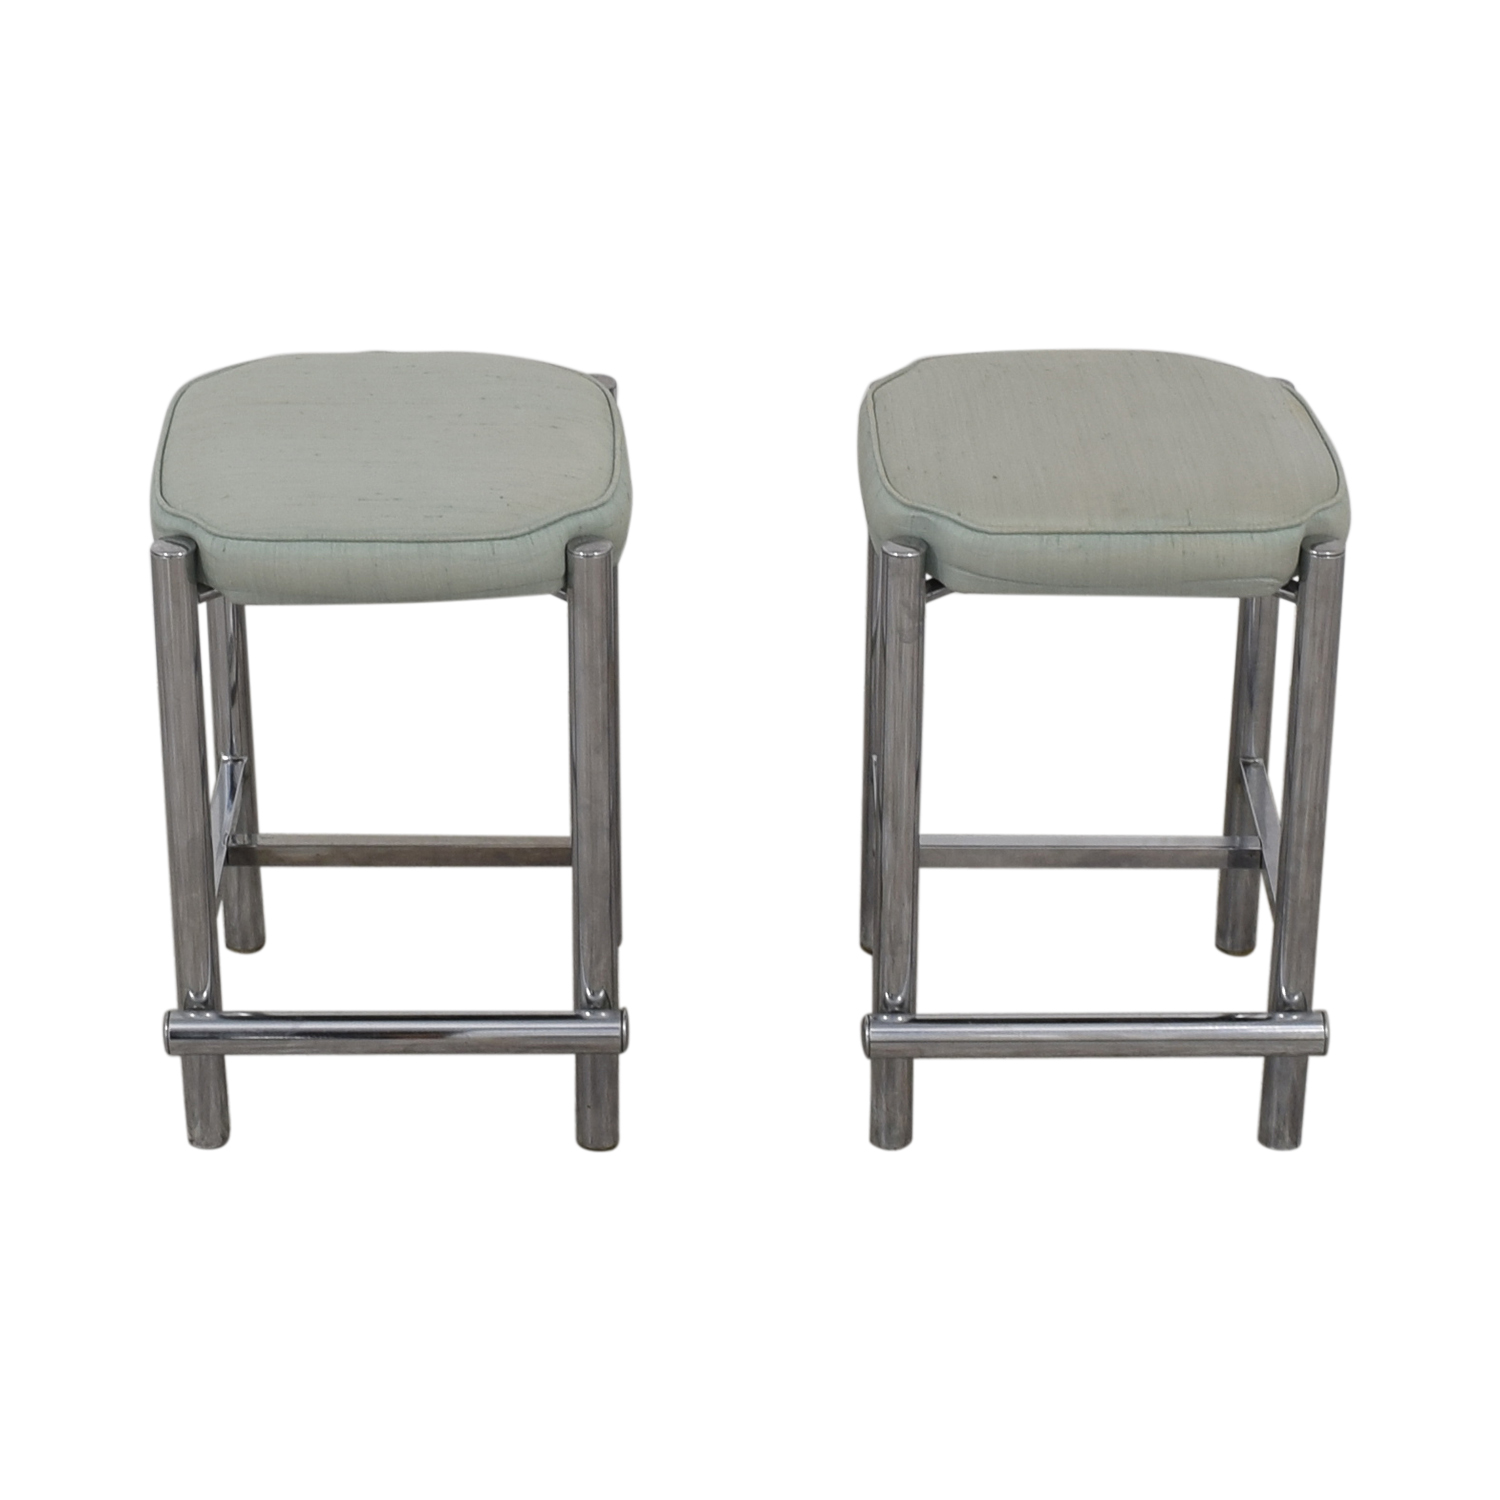 Chrome and Sage Green Upholstered Counter Stools / Chairs